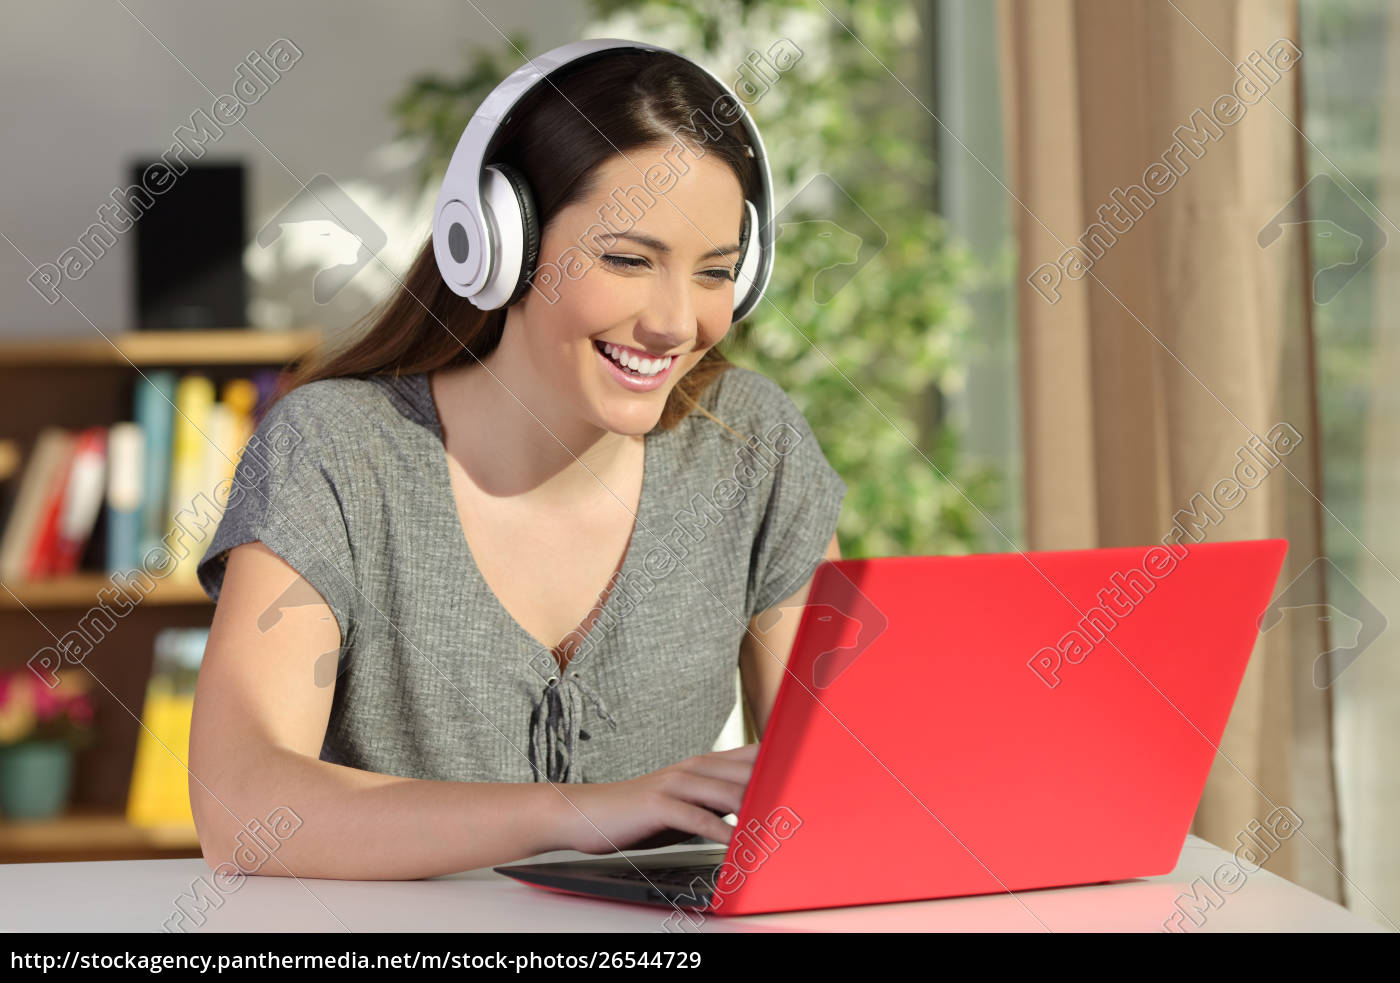 Girl E Learning With A Laptop And Headphones At Home Royalty Free Image 26544729 Panthermedia Stock Agency